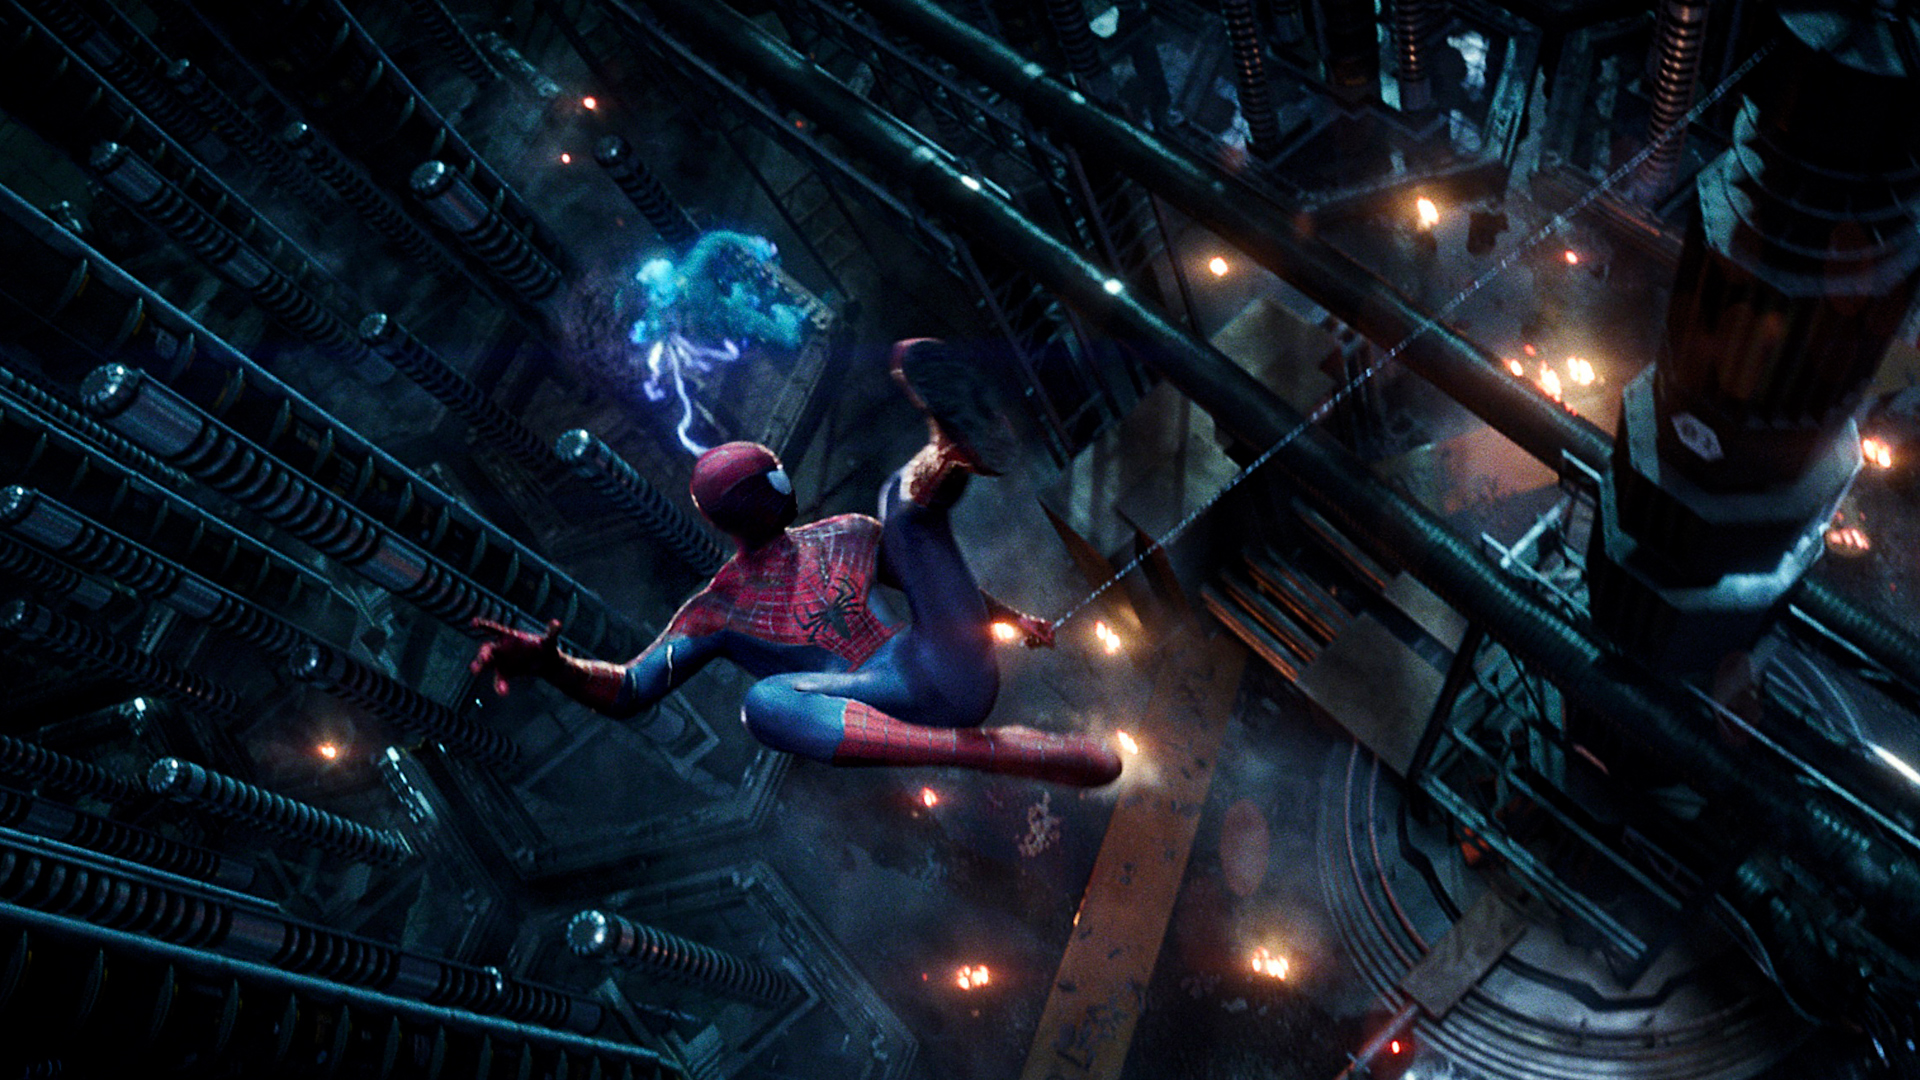 Spiderman 3 Hd Wallpapers 1080p: Spiderman HD Wallpapers 1080p